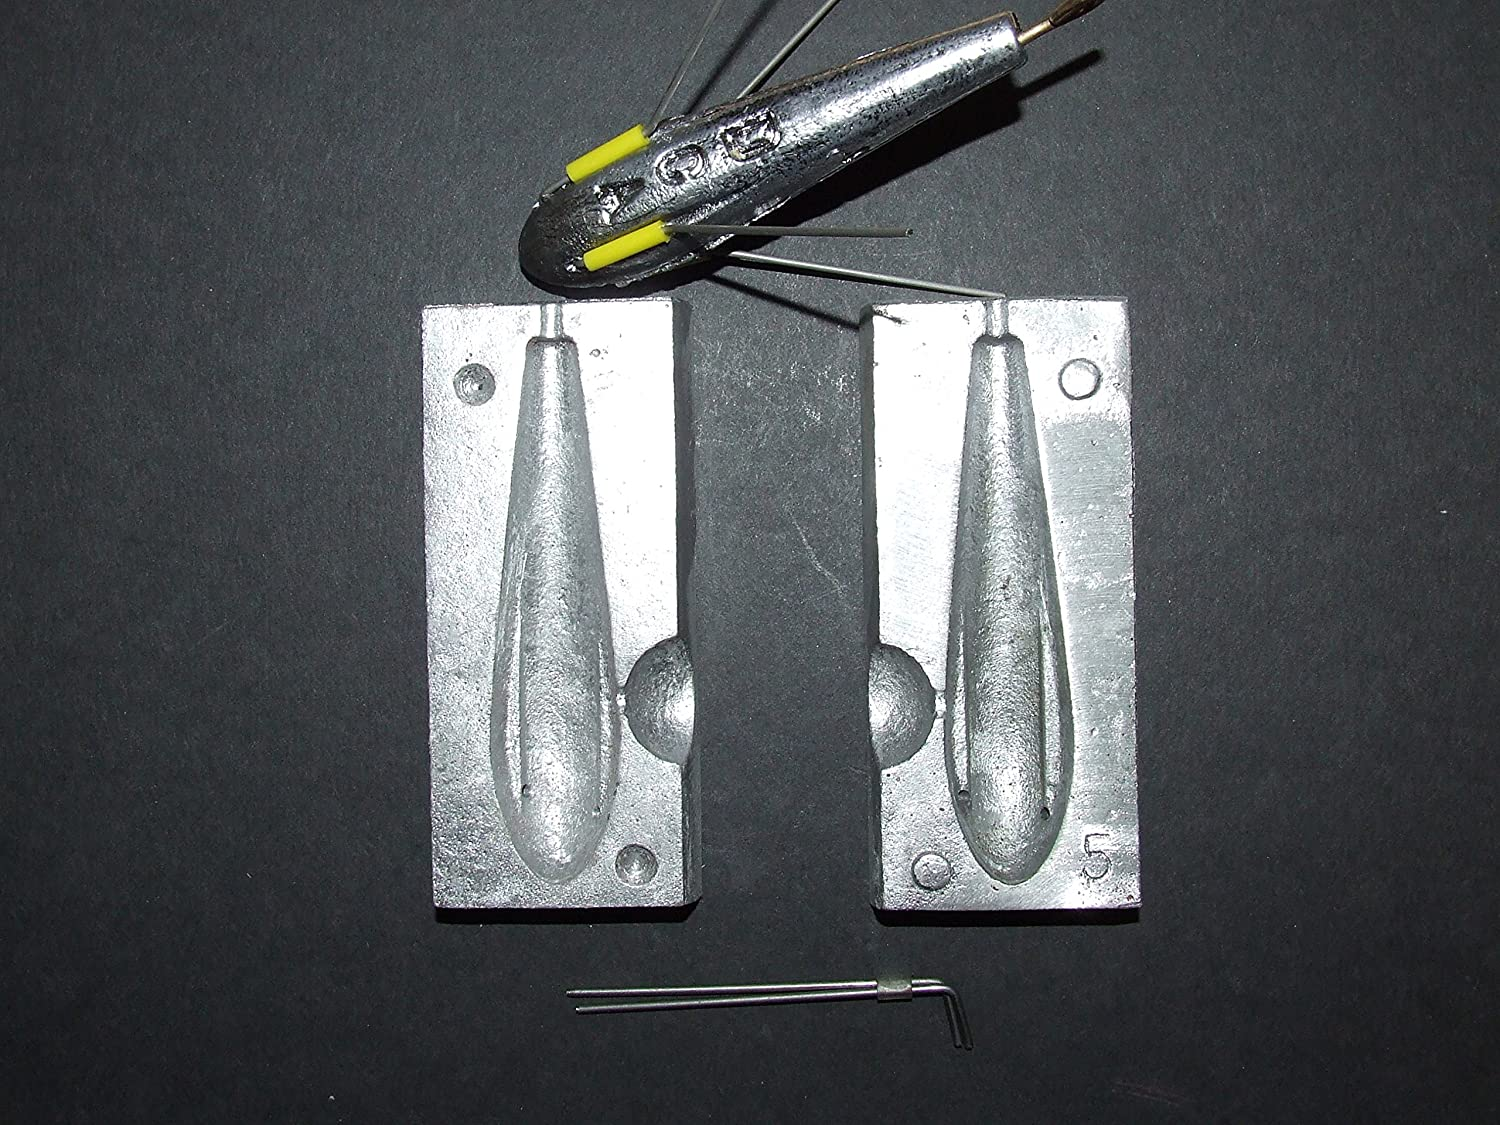 FFT 4 in 1 LEAD WEIGHT MOULD 2 3 4 5oz BEACH BOAT COD CARP COURSE SEA FISHING